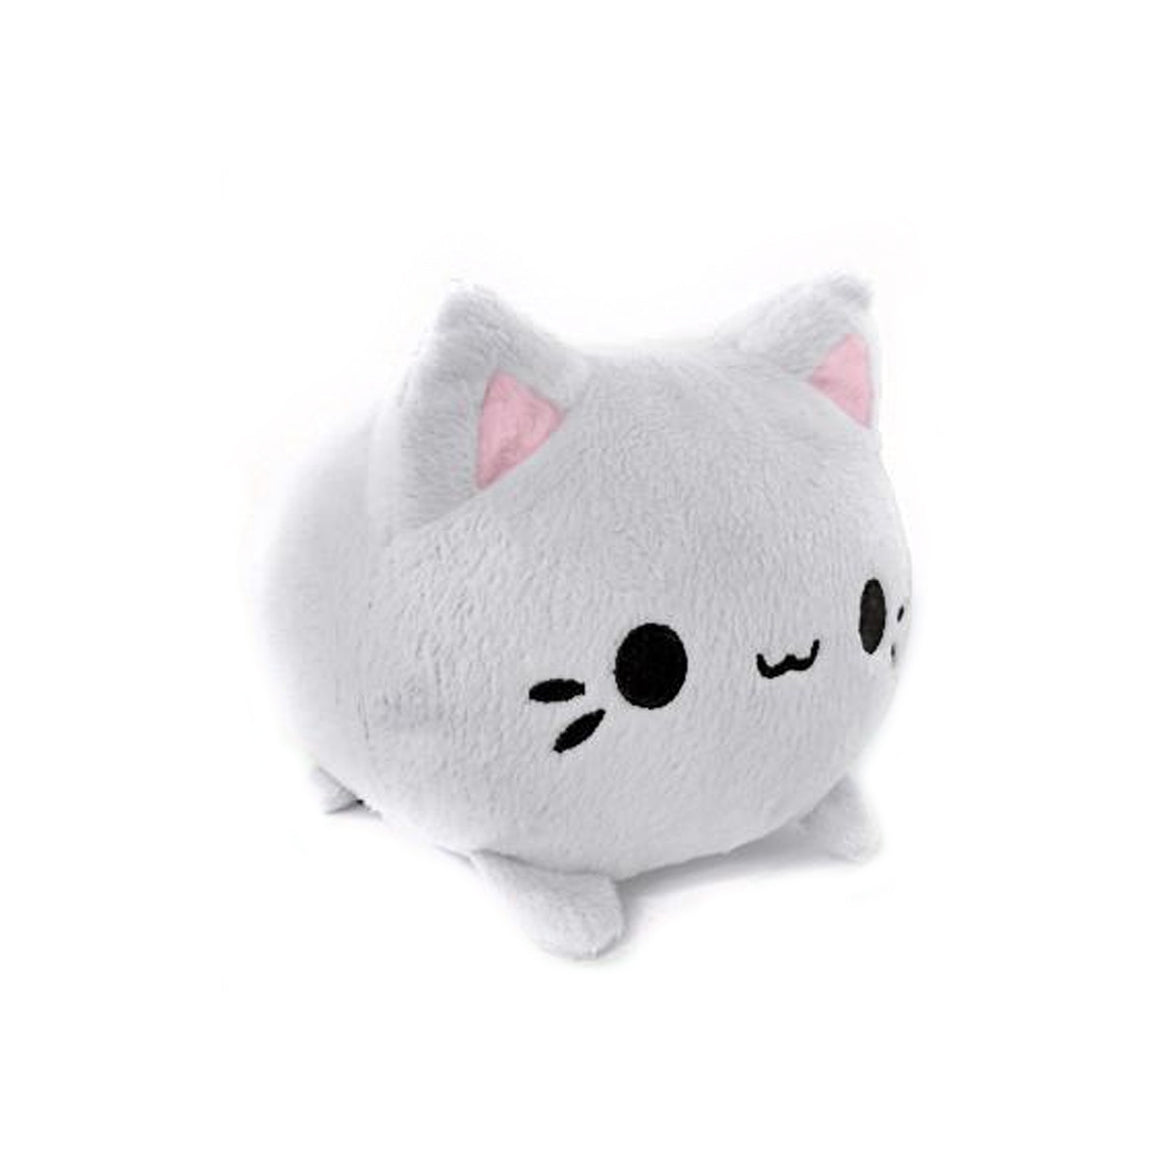 Meowchi Custard Plush  by Tasty Peach Studios